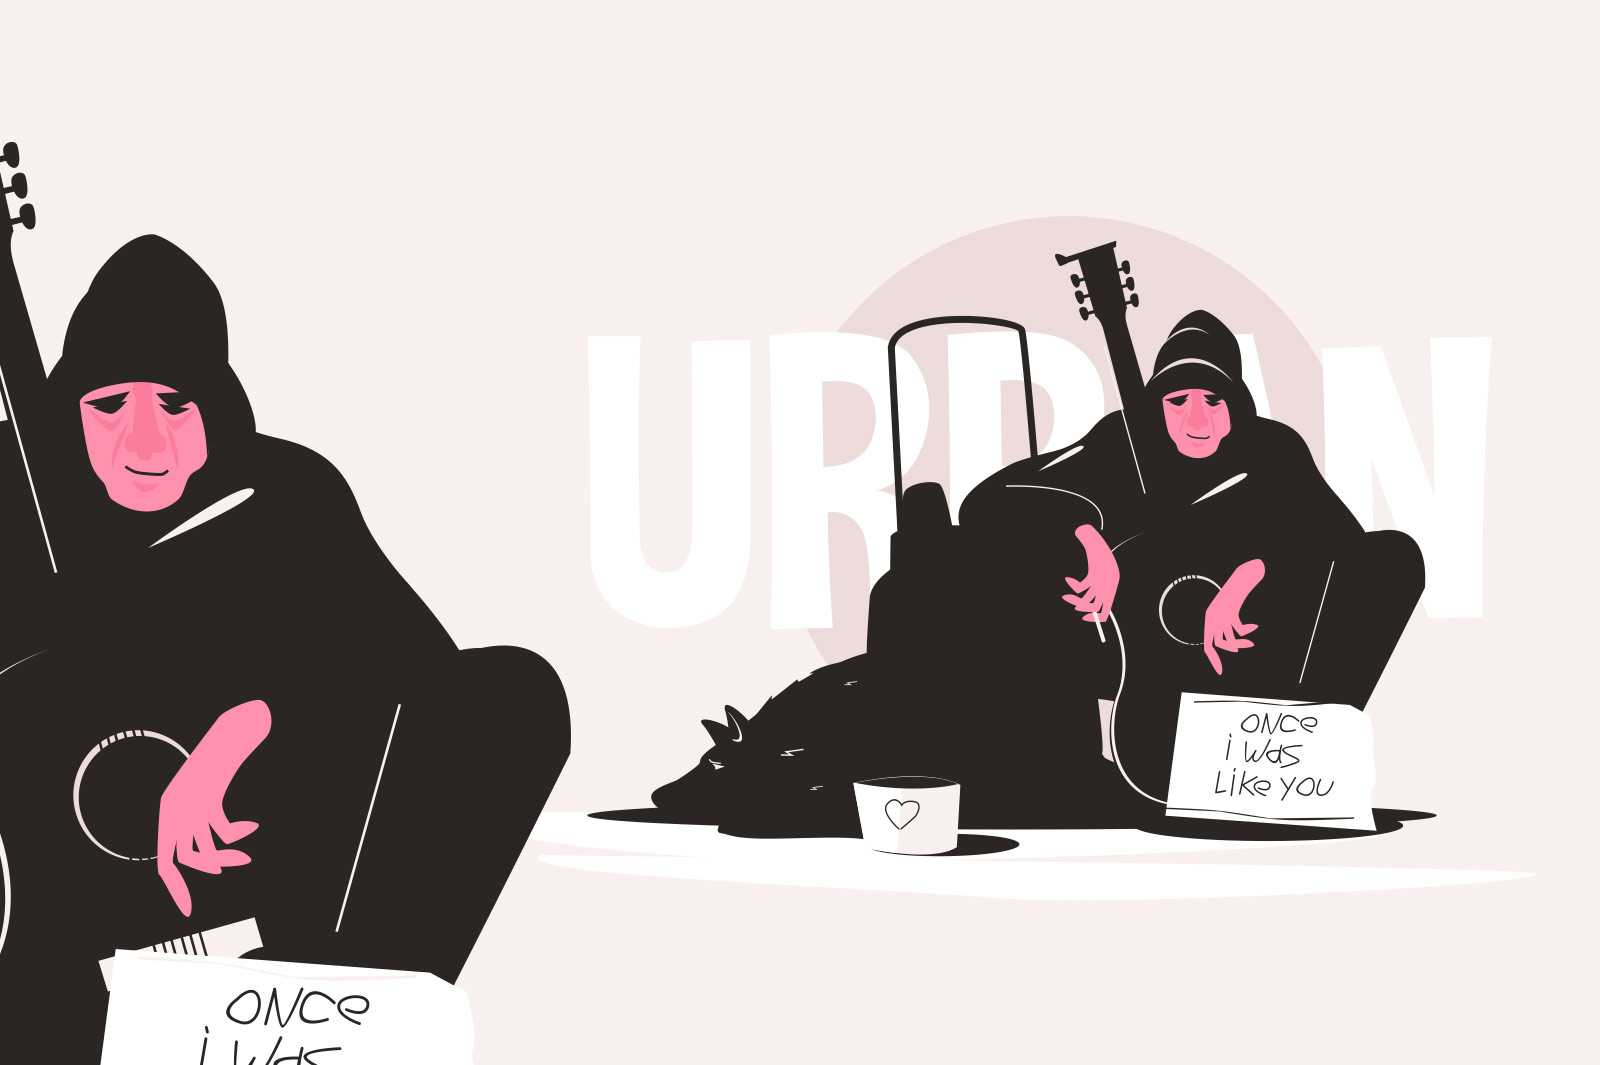 Poor urban homeless man vector illustration. Guy sitting on street with one i was like you sign flat style. Male play on guitar for money. Poverty and street life concept. Isolated on pink background